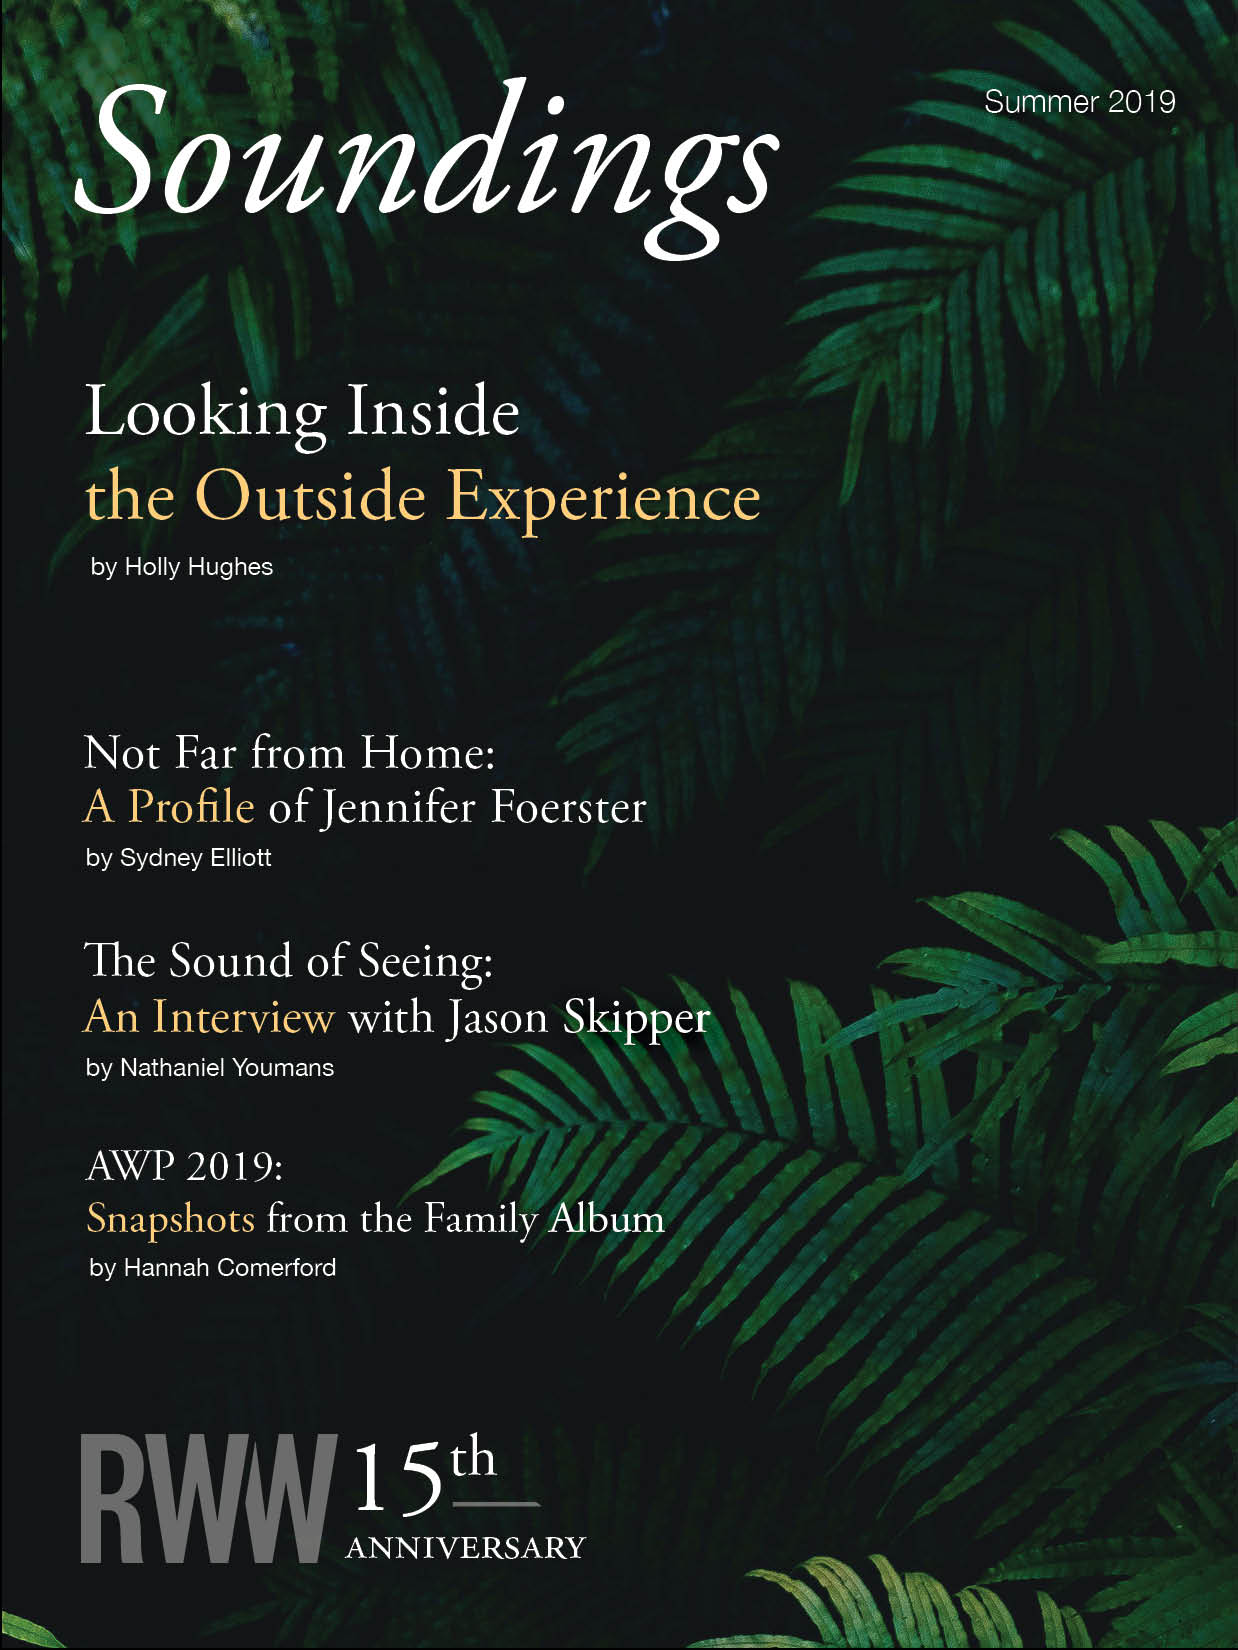 Soundings Summer 2019